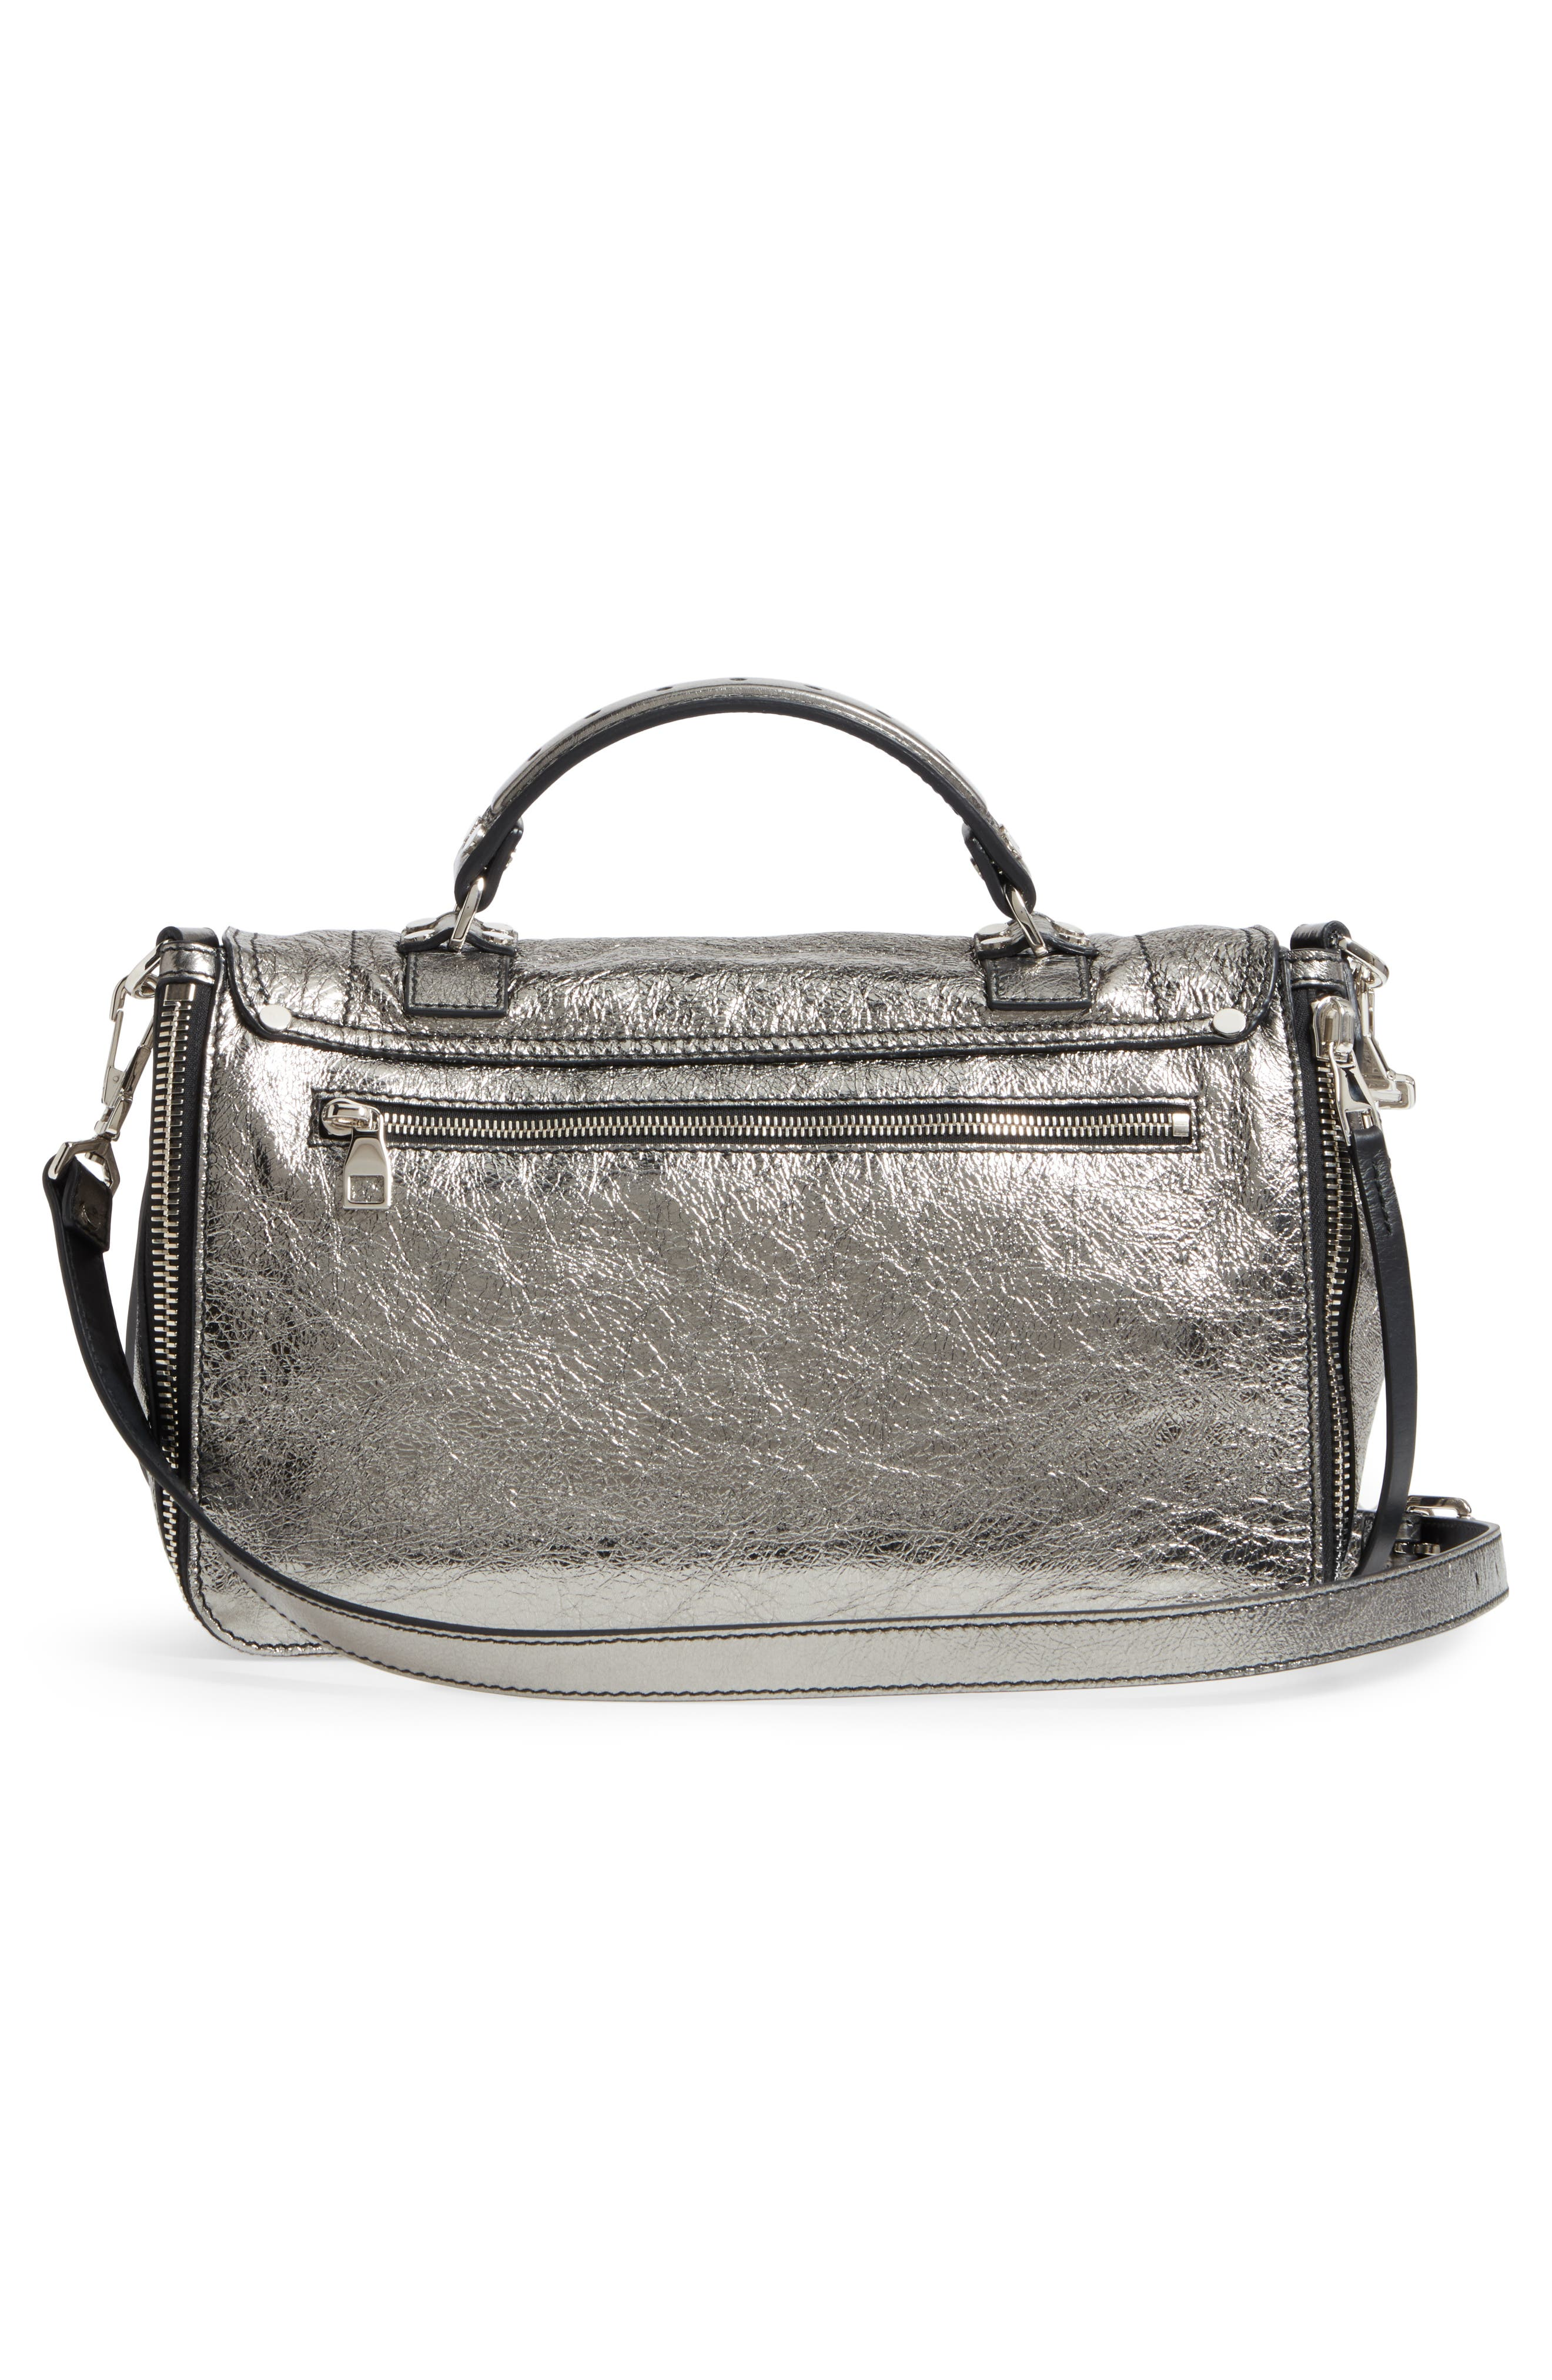 Medium PS1 Metallic Calfskin Satchel,                             Alternate thumbnail 3, color,